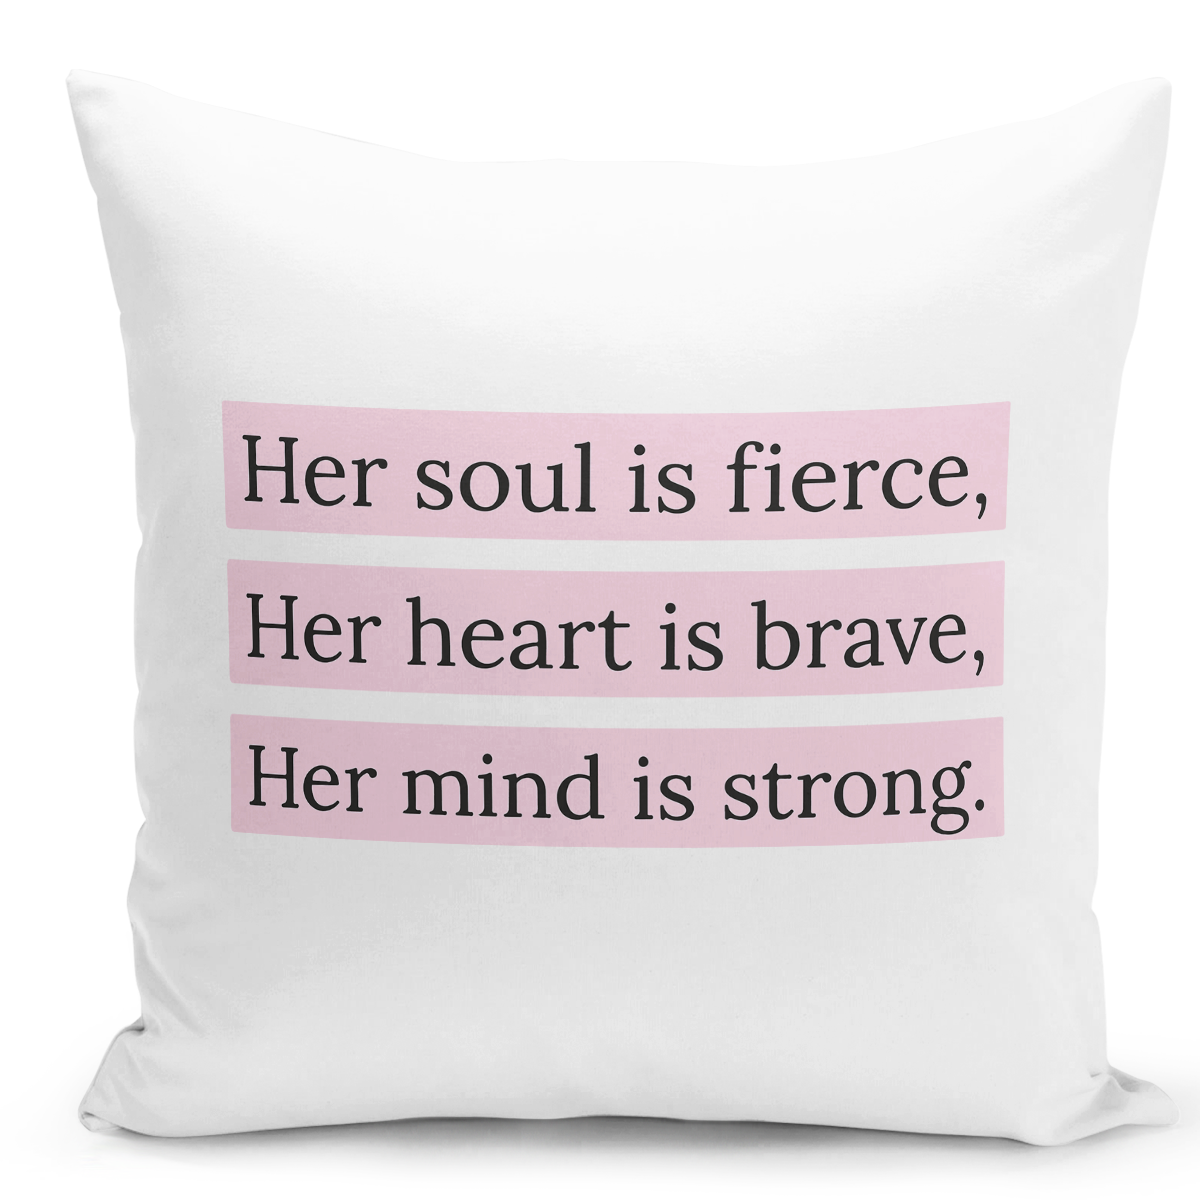 16x16-inch-Throw-Pillow-for-Home-Decor-with-Stuffing-Fierce-Brave-Strong-Heart-Girl-Quote-Women-Pillow-